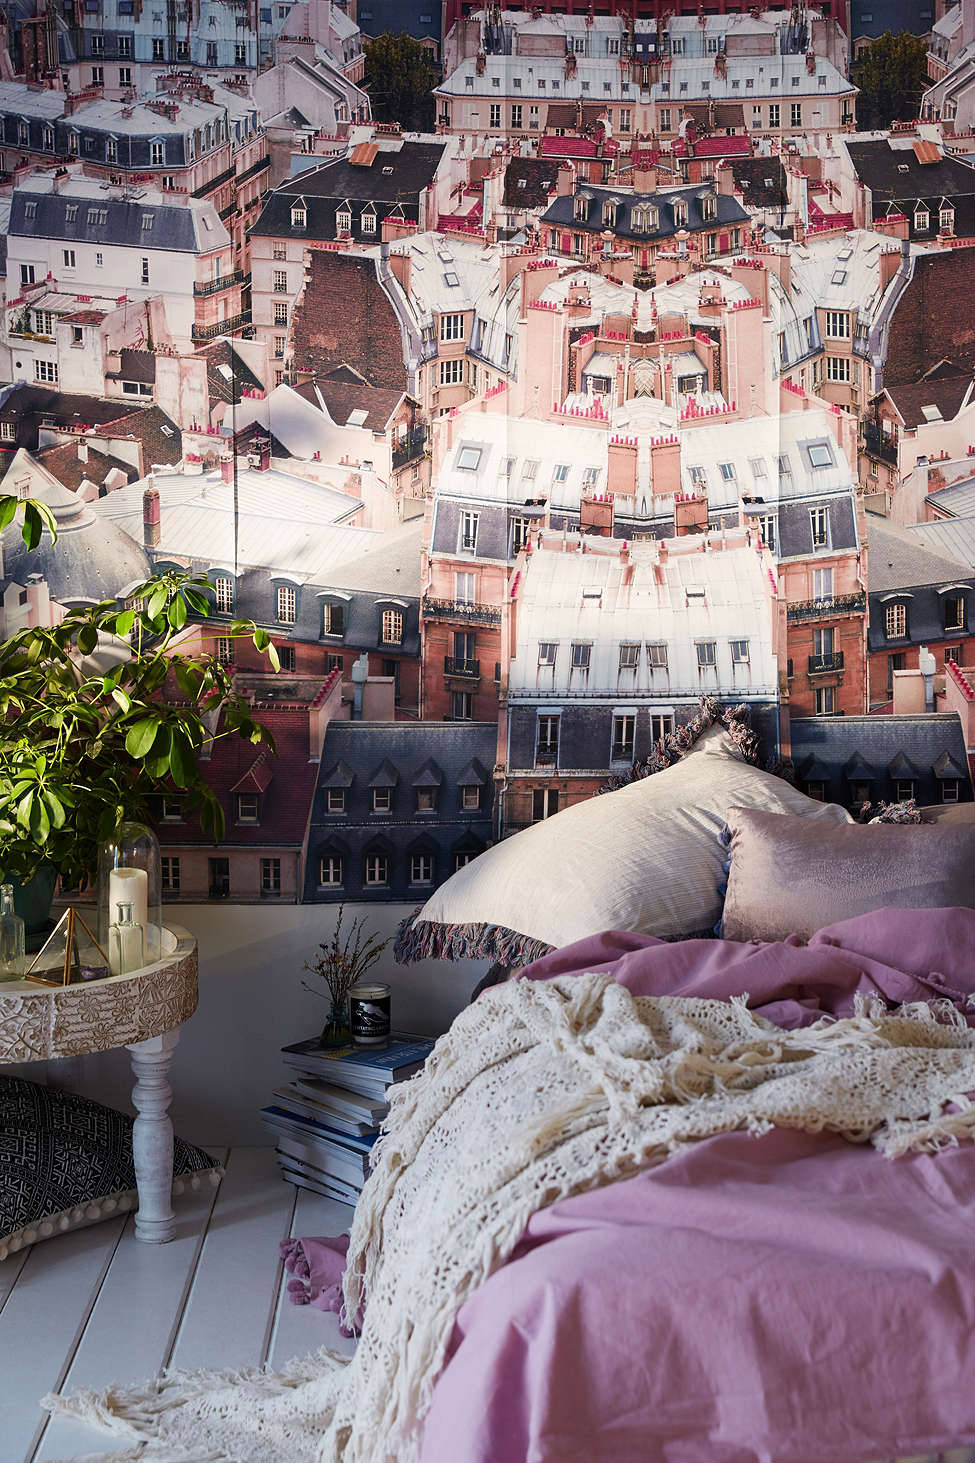 The Nordroom - Creative Headboard and Bedroom Styling Ideas